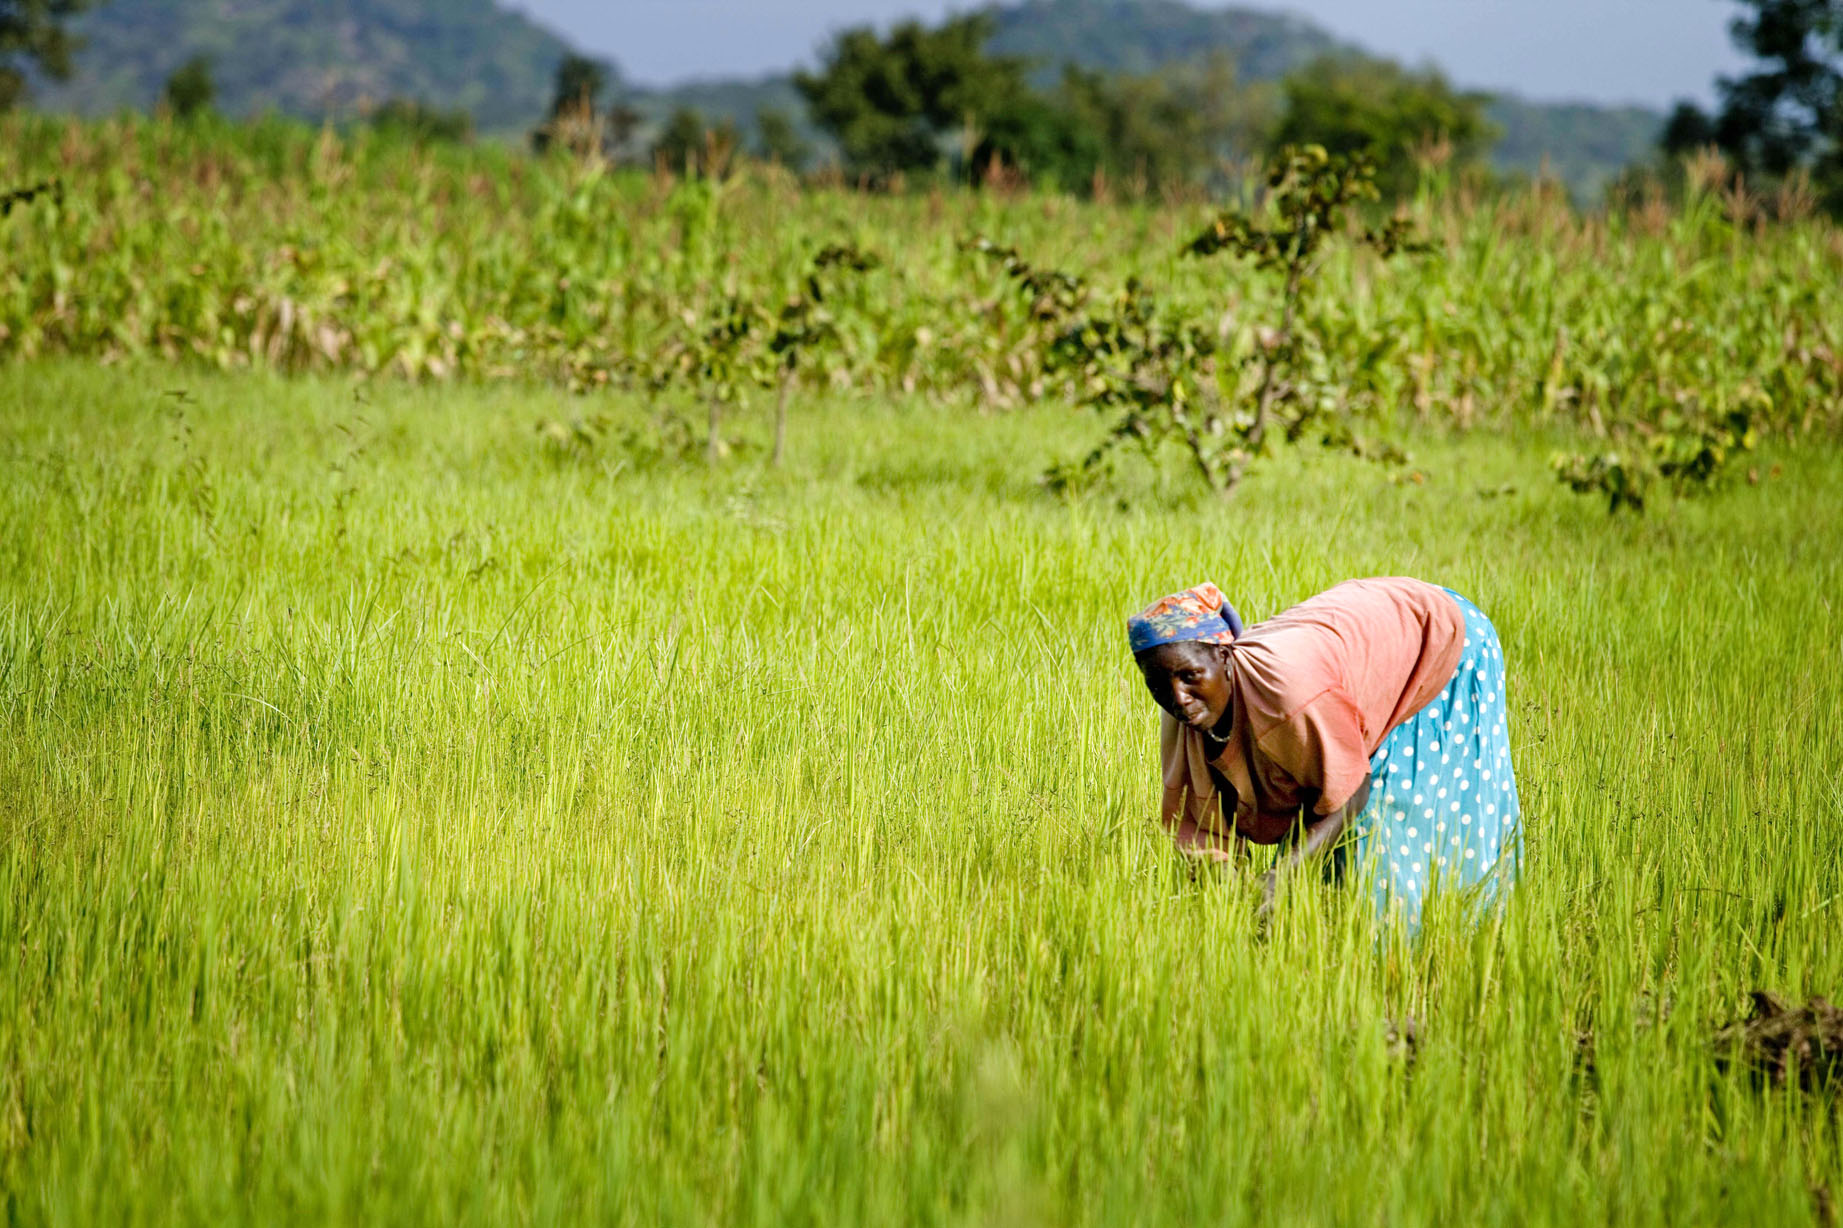 A woman farms rice on her farm in Ungwaku 1, Kajura District, in Kaduna State Nigeria